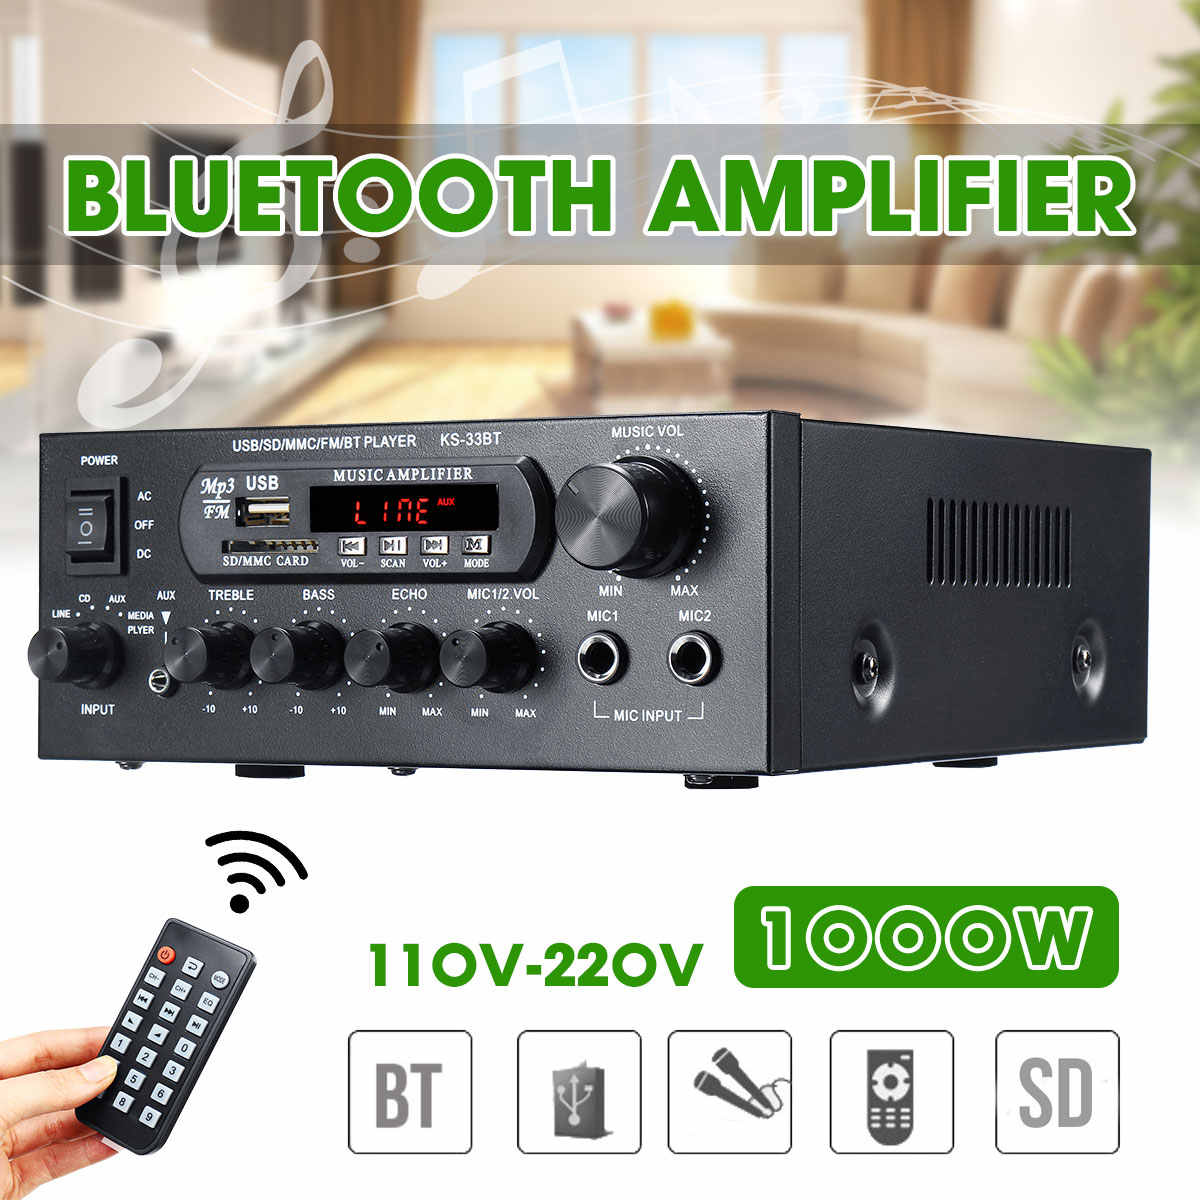 1000W 220V 110V Audio Power Amplifier Home Theater Amplifier Audio dengan Remote Control Mendukung FM USB SD kartu Bluetooth